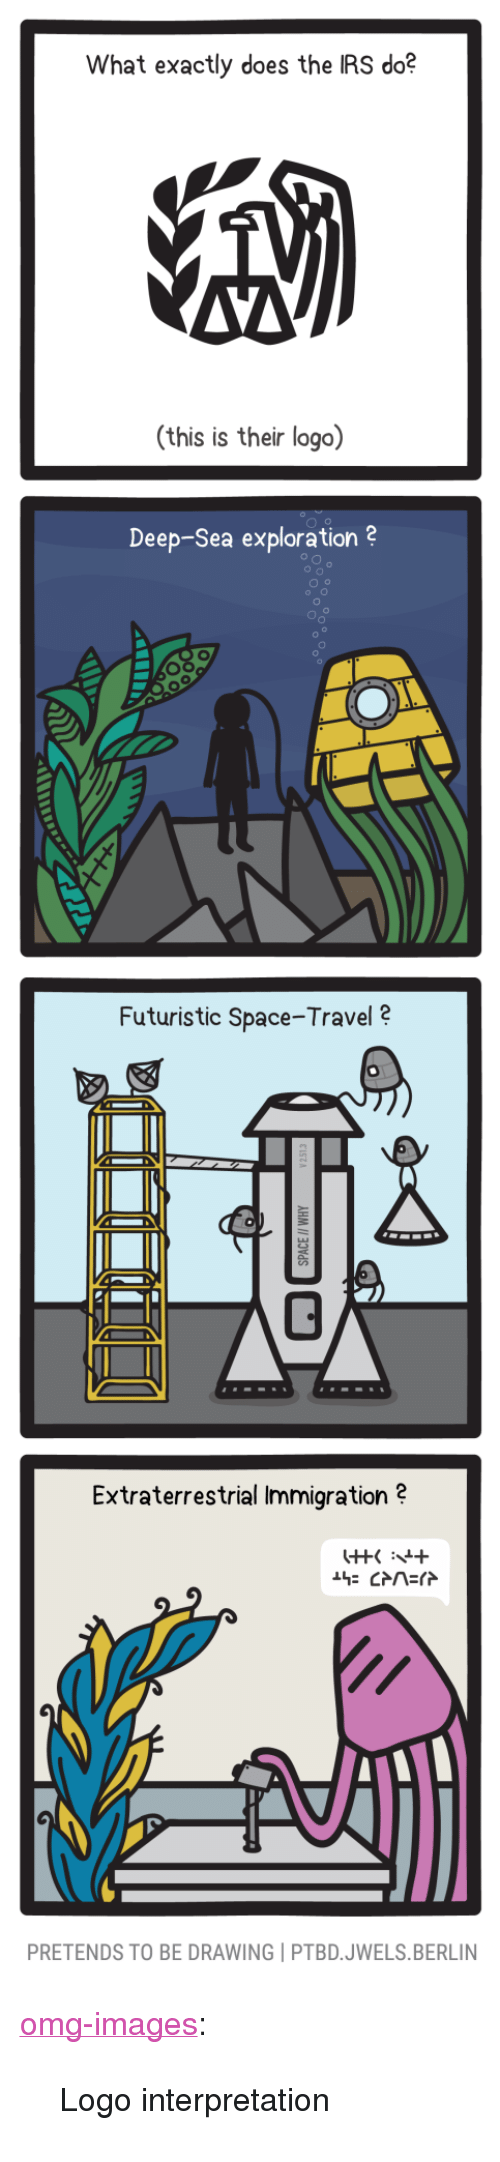 """Irs, Omg, and Tumblr: What exactly does the IRS do?  AVA  (this is their logo)  Deep-Sea exploration 2  Futuristic Space-Travel  Extraterrestrial Immigration?  PRETENDS TO BE DRAWING PTBD.JWELS.BERLIN <p><a href=""""https://omg-images.tumblr.com/post/171025815397/logo-interpretation"""" class=""""tumblr_blog"""">omg-images</a>:</p>  <blockquote><p>Logo interpretation</p></blockquote>"""